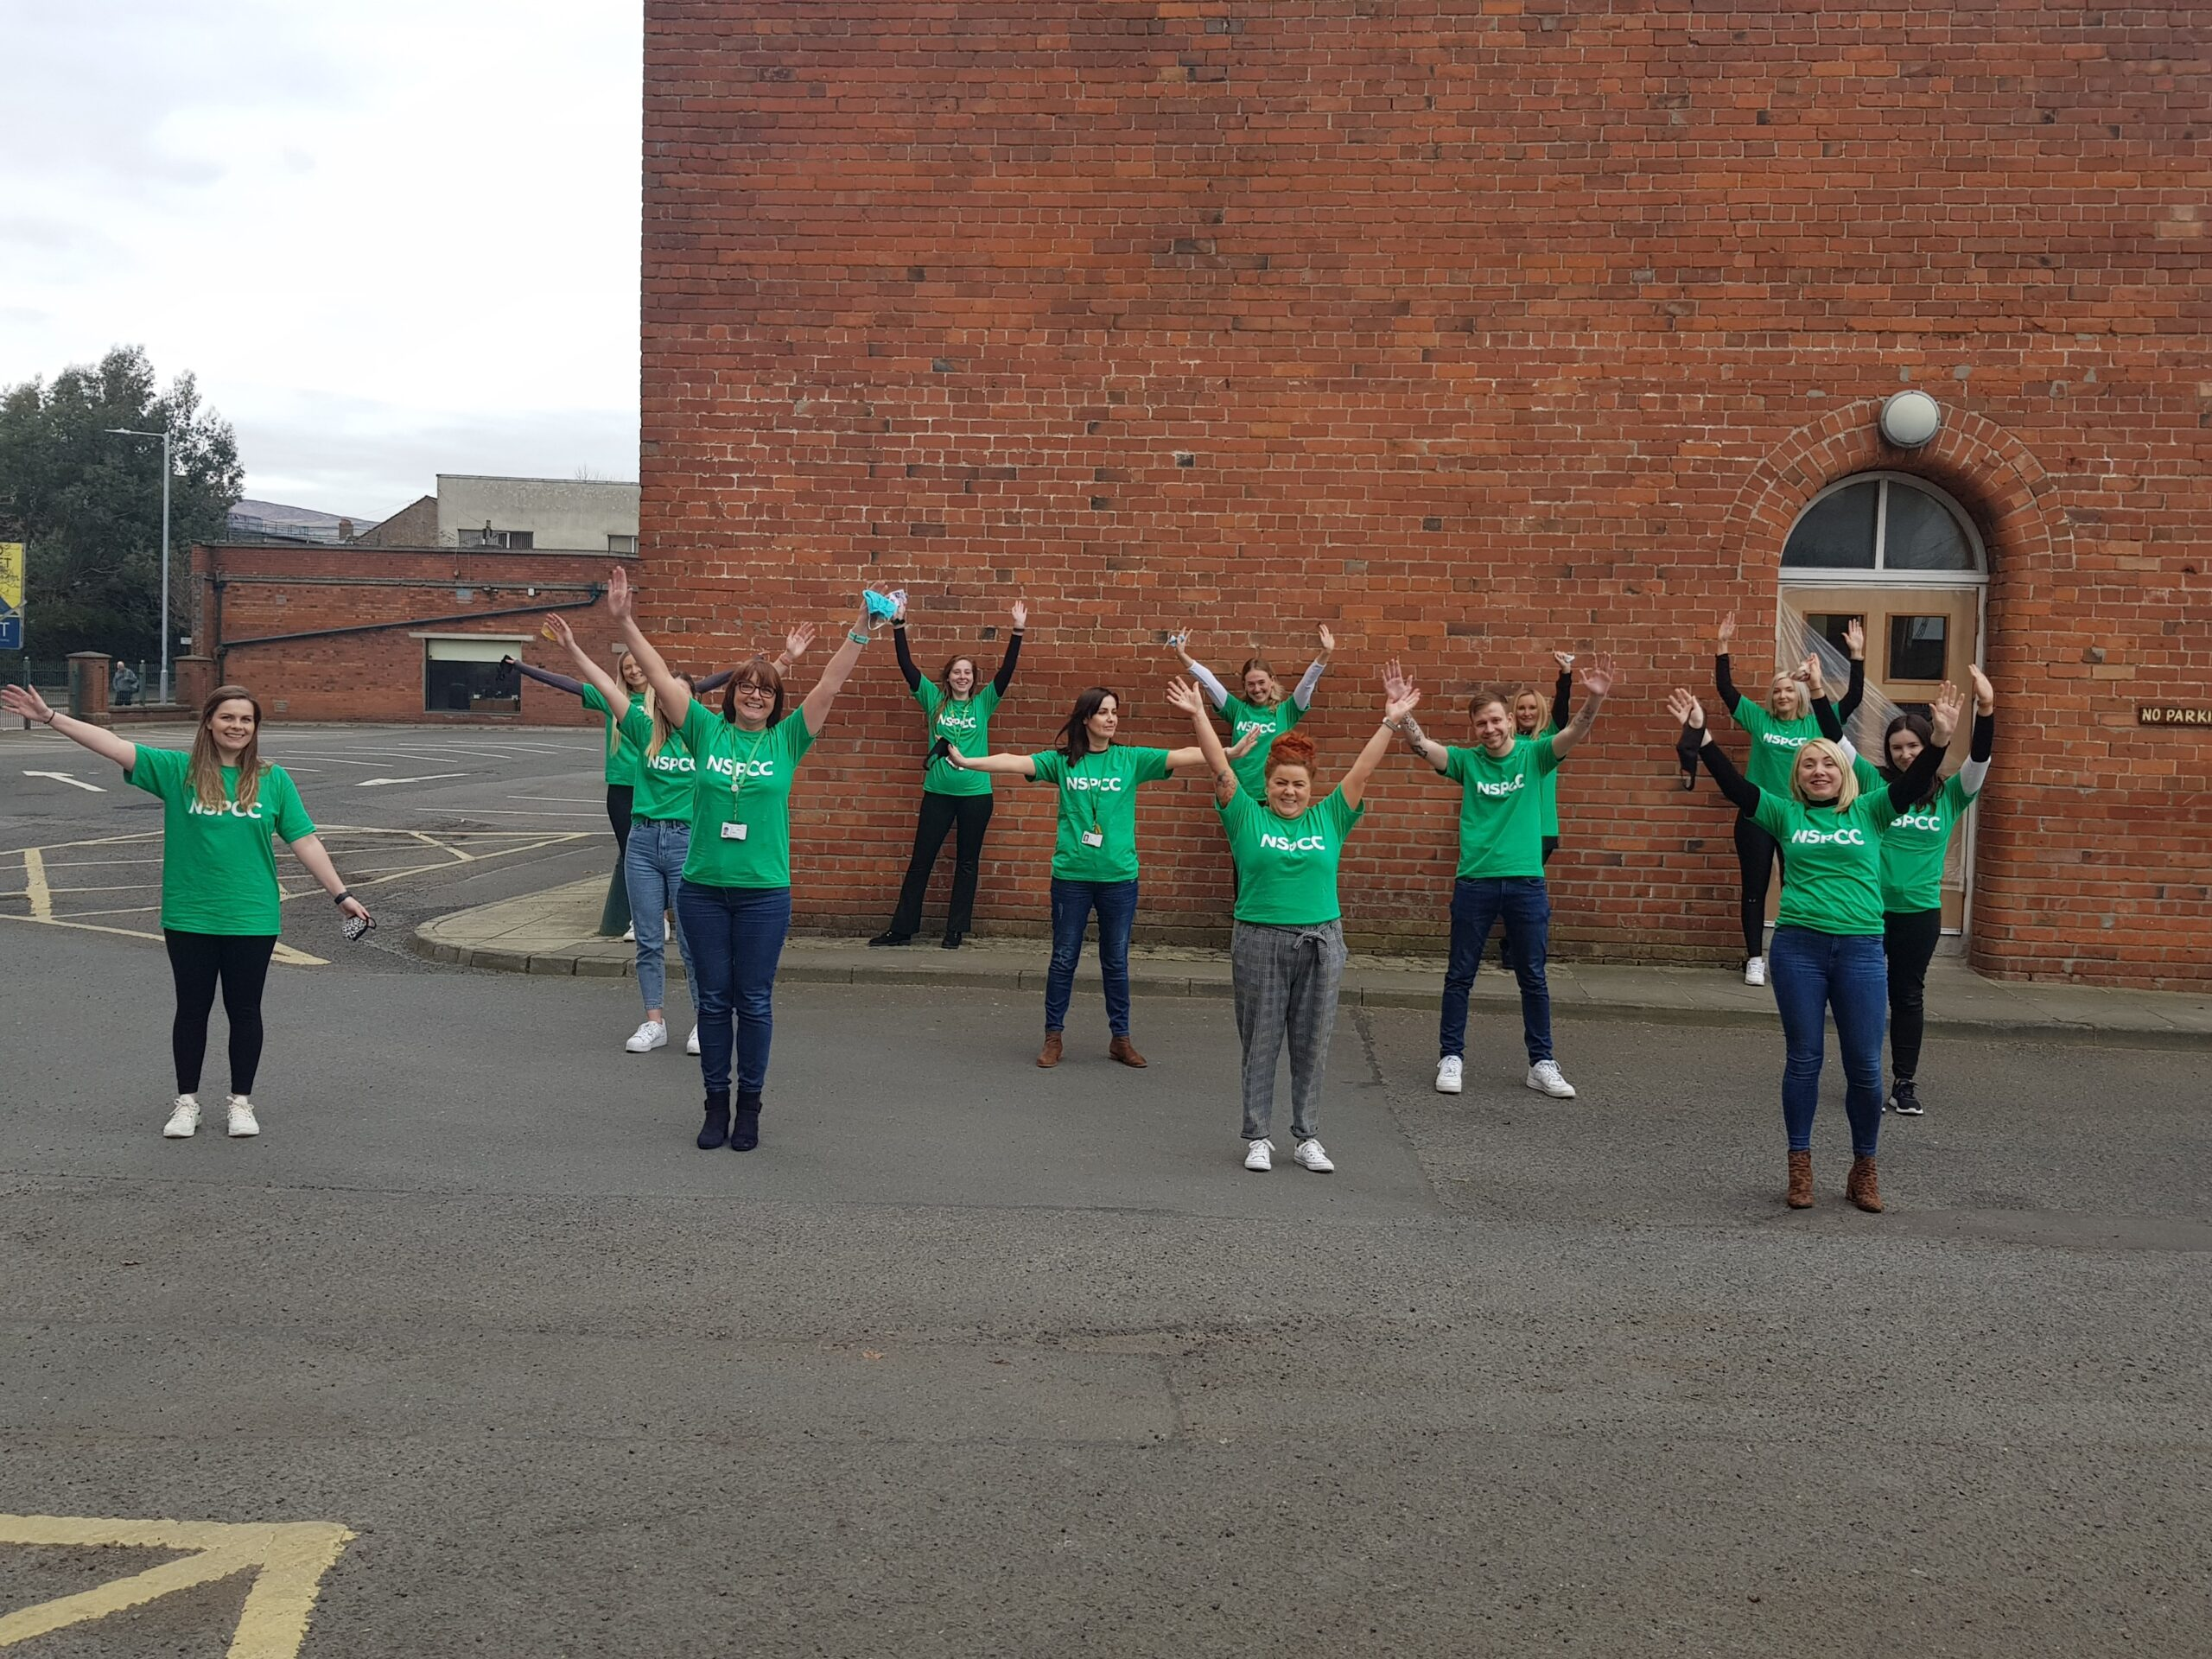 NSPCC NI Helpline team members taking part - NSPCC Helpline staff take part in 5km a day fundraising challenge | Newry Times news